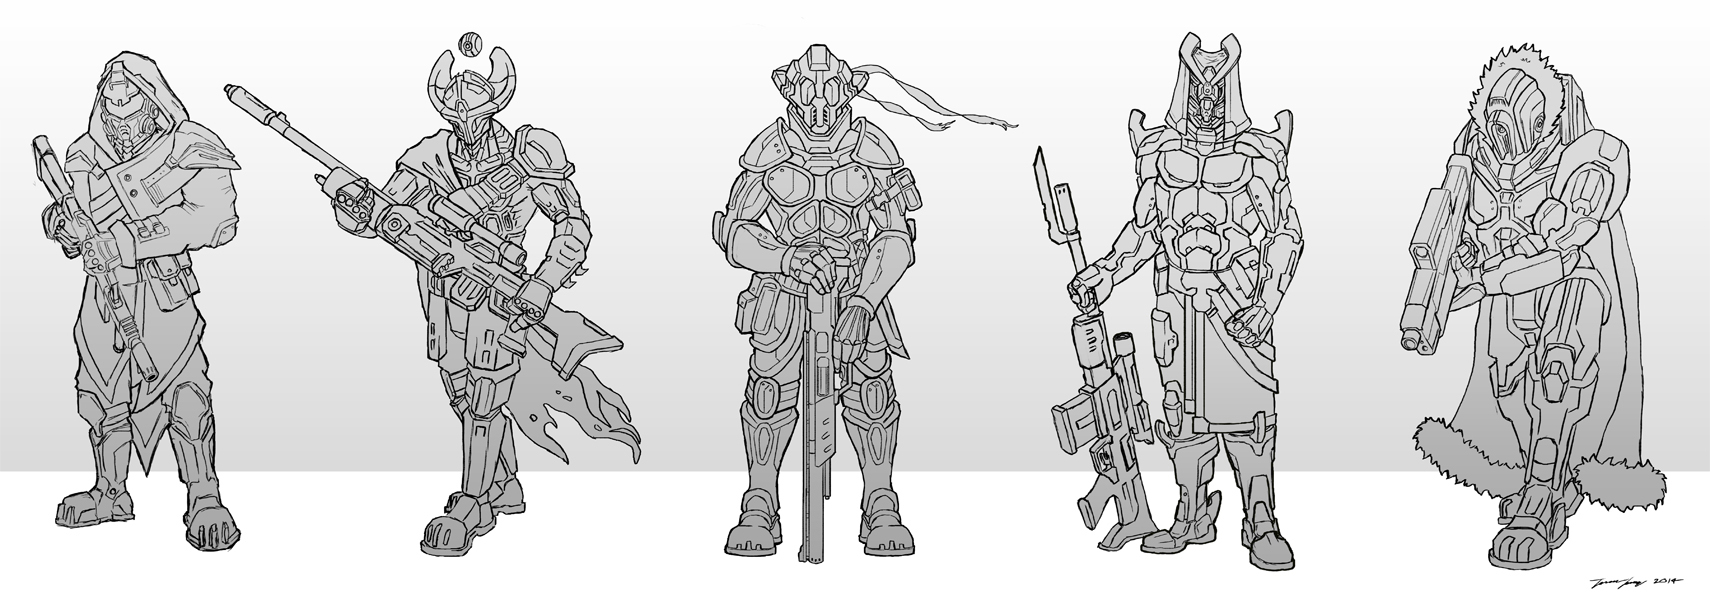 Sci_fI_Assult_soldiers_Travis_Lacey_Sketches